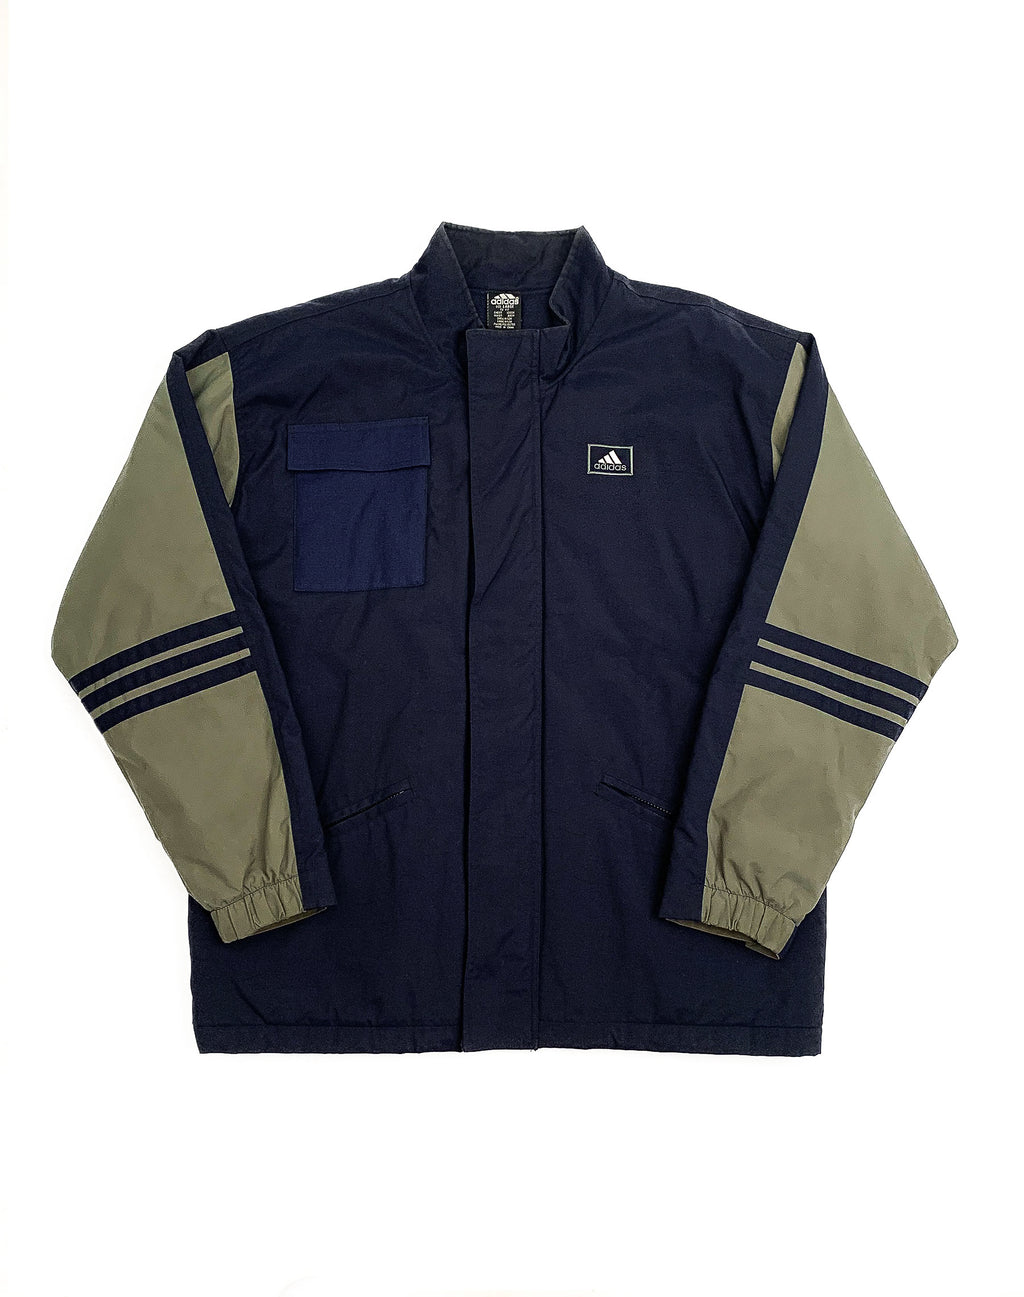 ADIDAS NAVY PADDED COAT